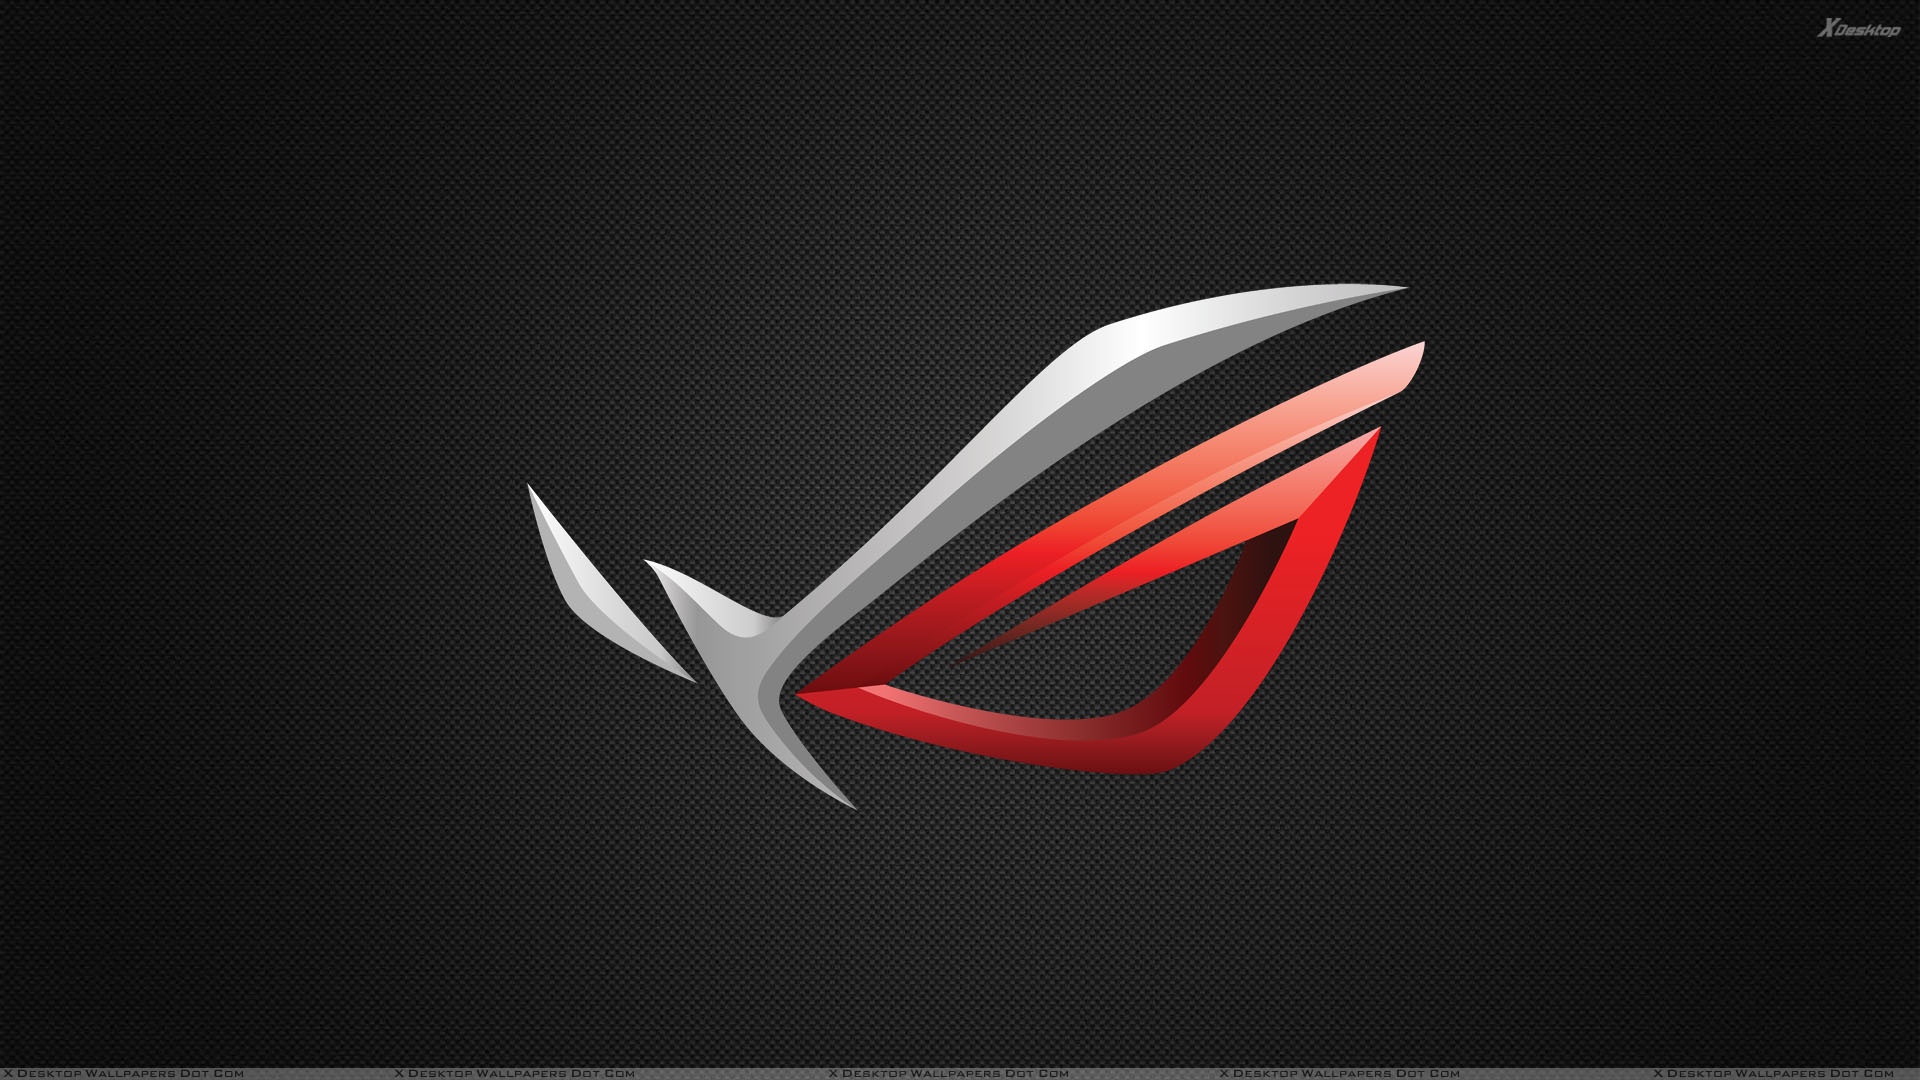 Asus ROG Logo On Black Background Wallpaper 1920x1080